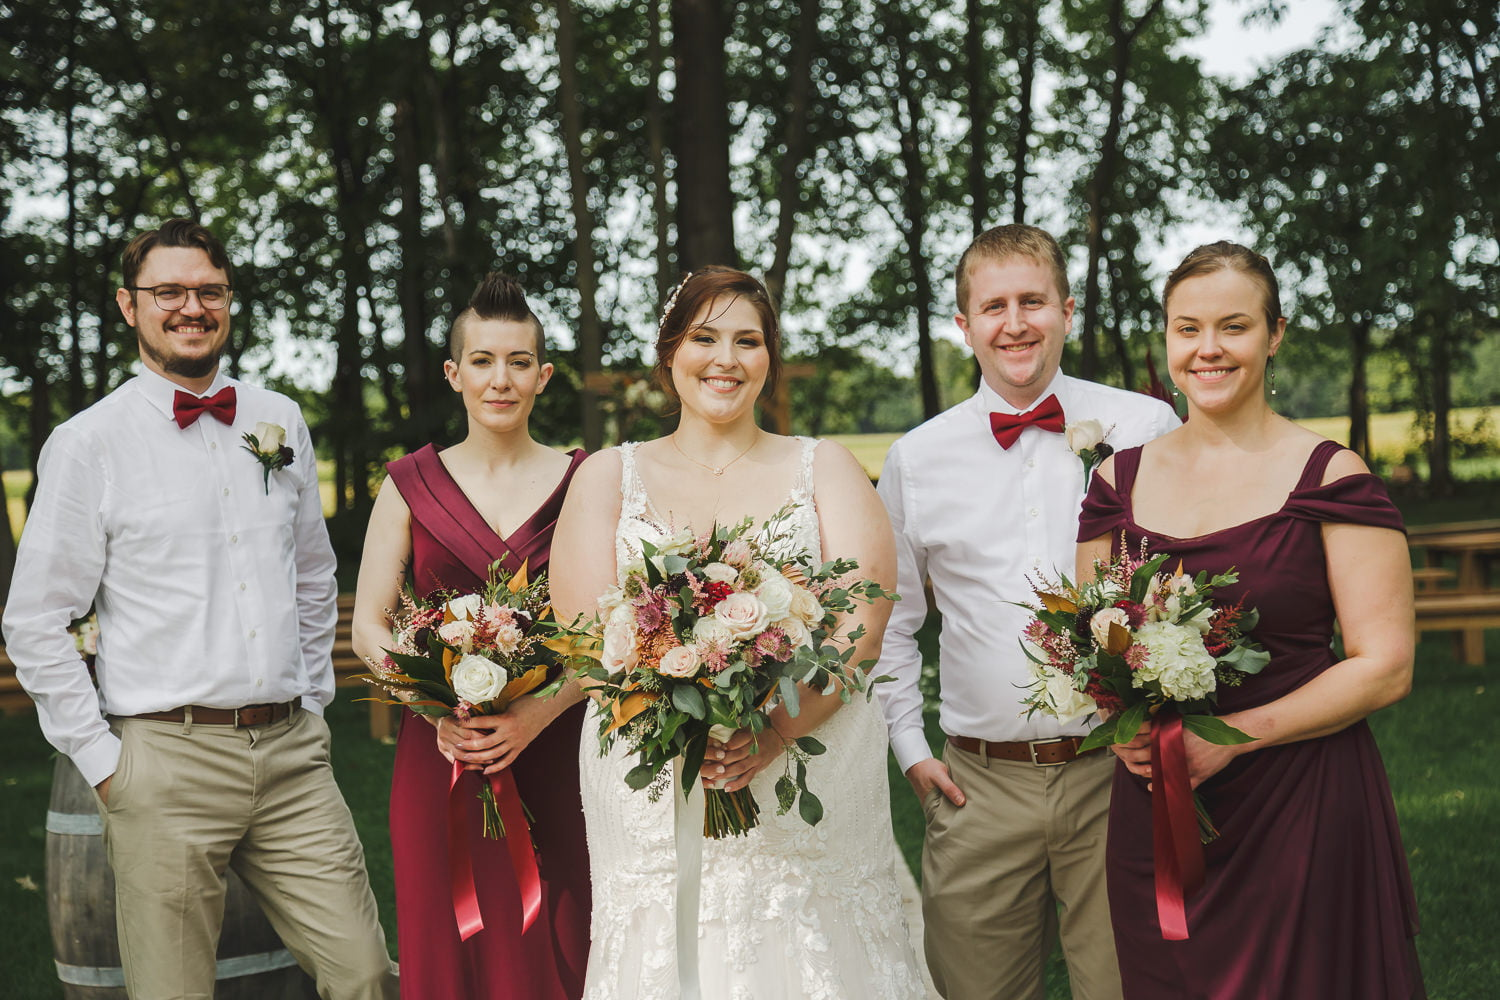 planning your wedding timeline for portraits